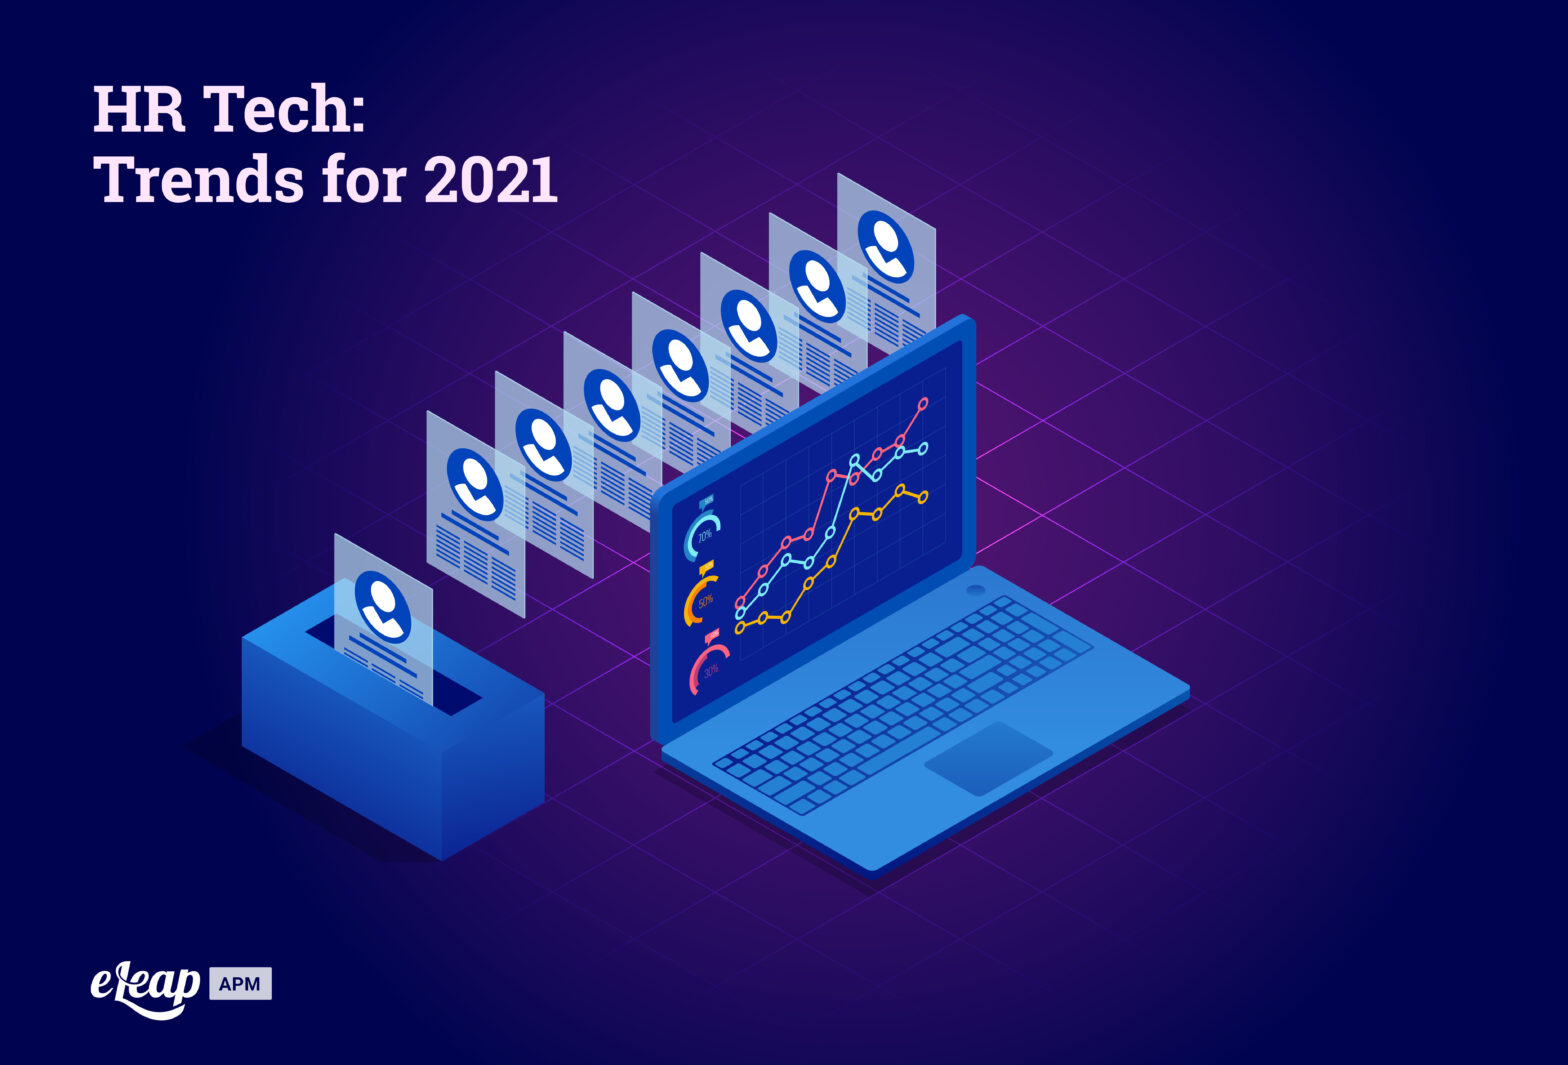 HR Tech: Trends for 2021